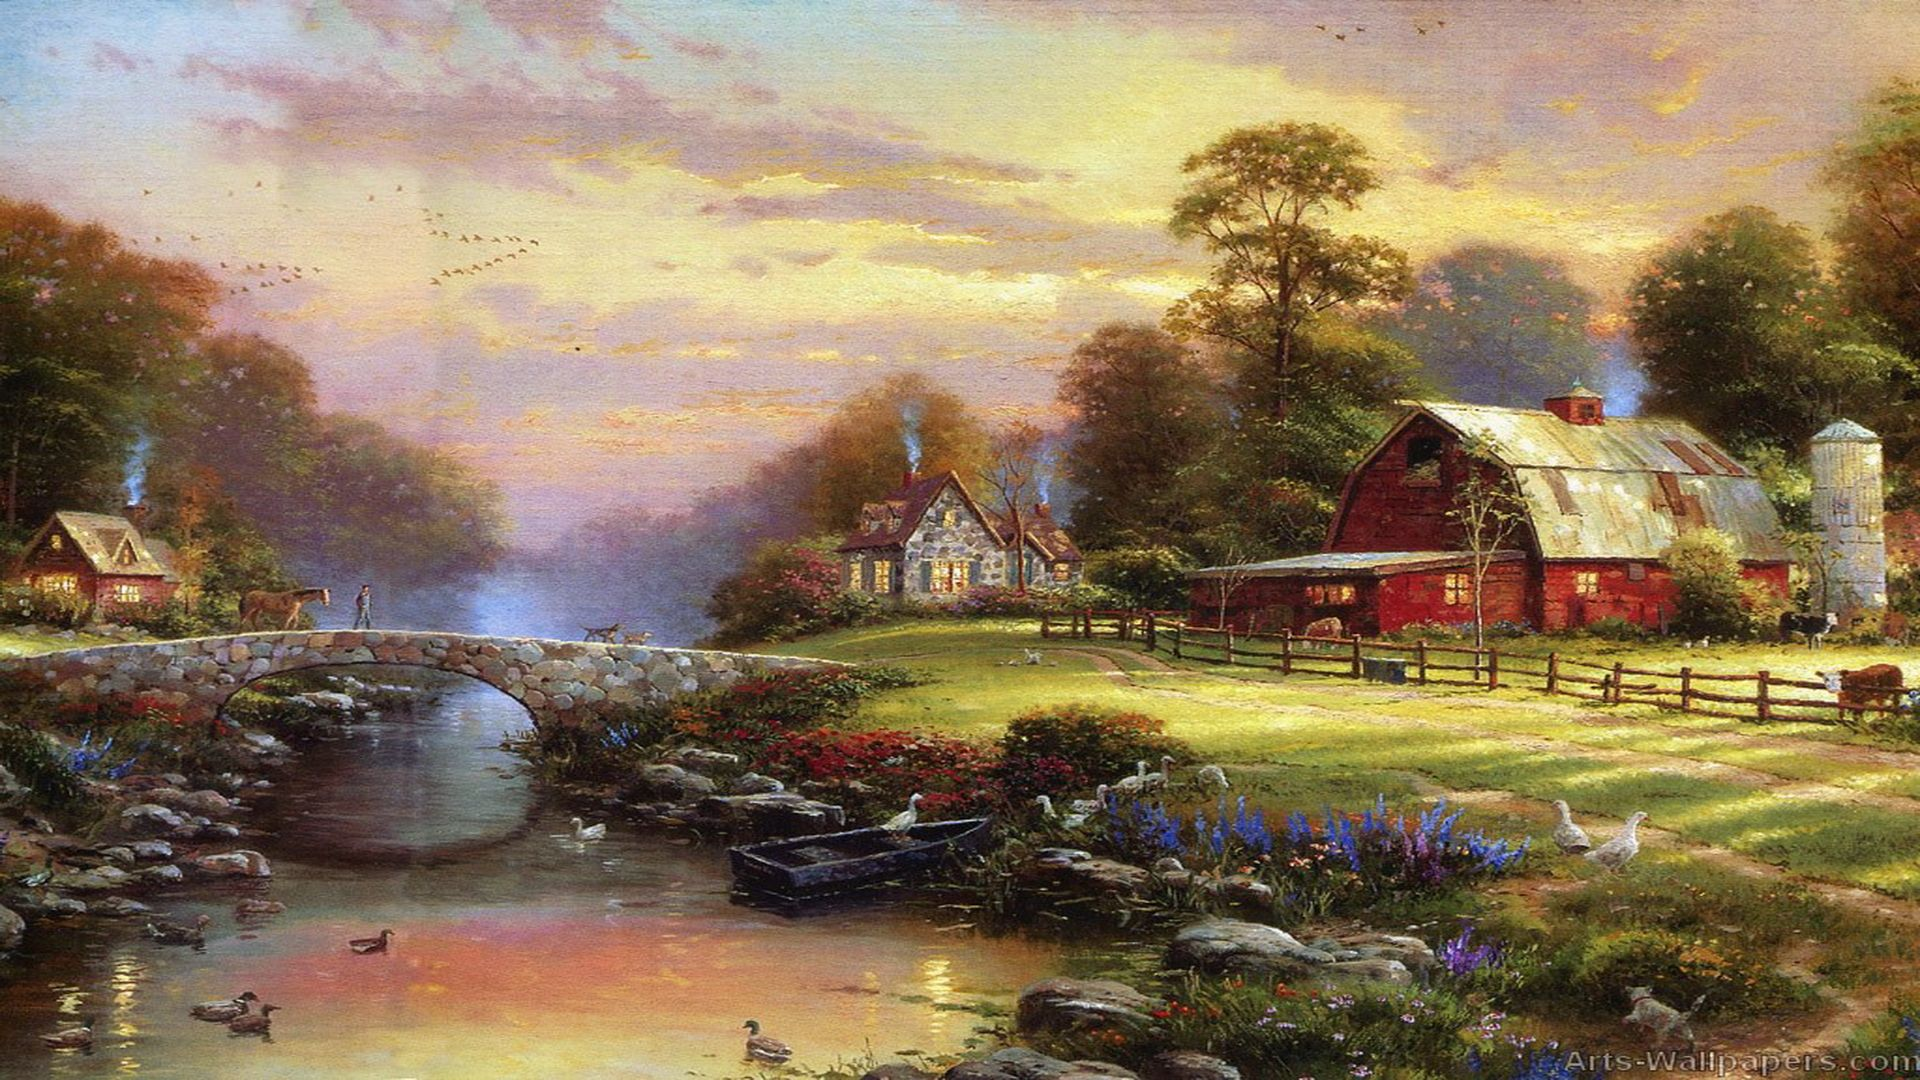 """an analysis of the works of thomas kinkade an american painter Thomas kinkade, cobblestone village, 1998 courtesy of  douglas's most spectacular analysis illuminates the system of  the self-described """"painter of light,"""" thomas kinkade, whose works, such as the one described above, have allegedly graced one in twenty american homes in the past two decades."""